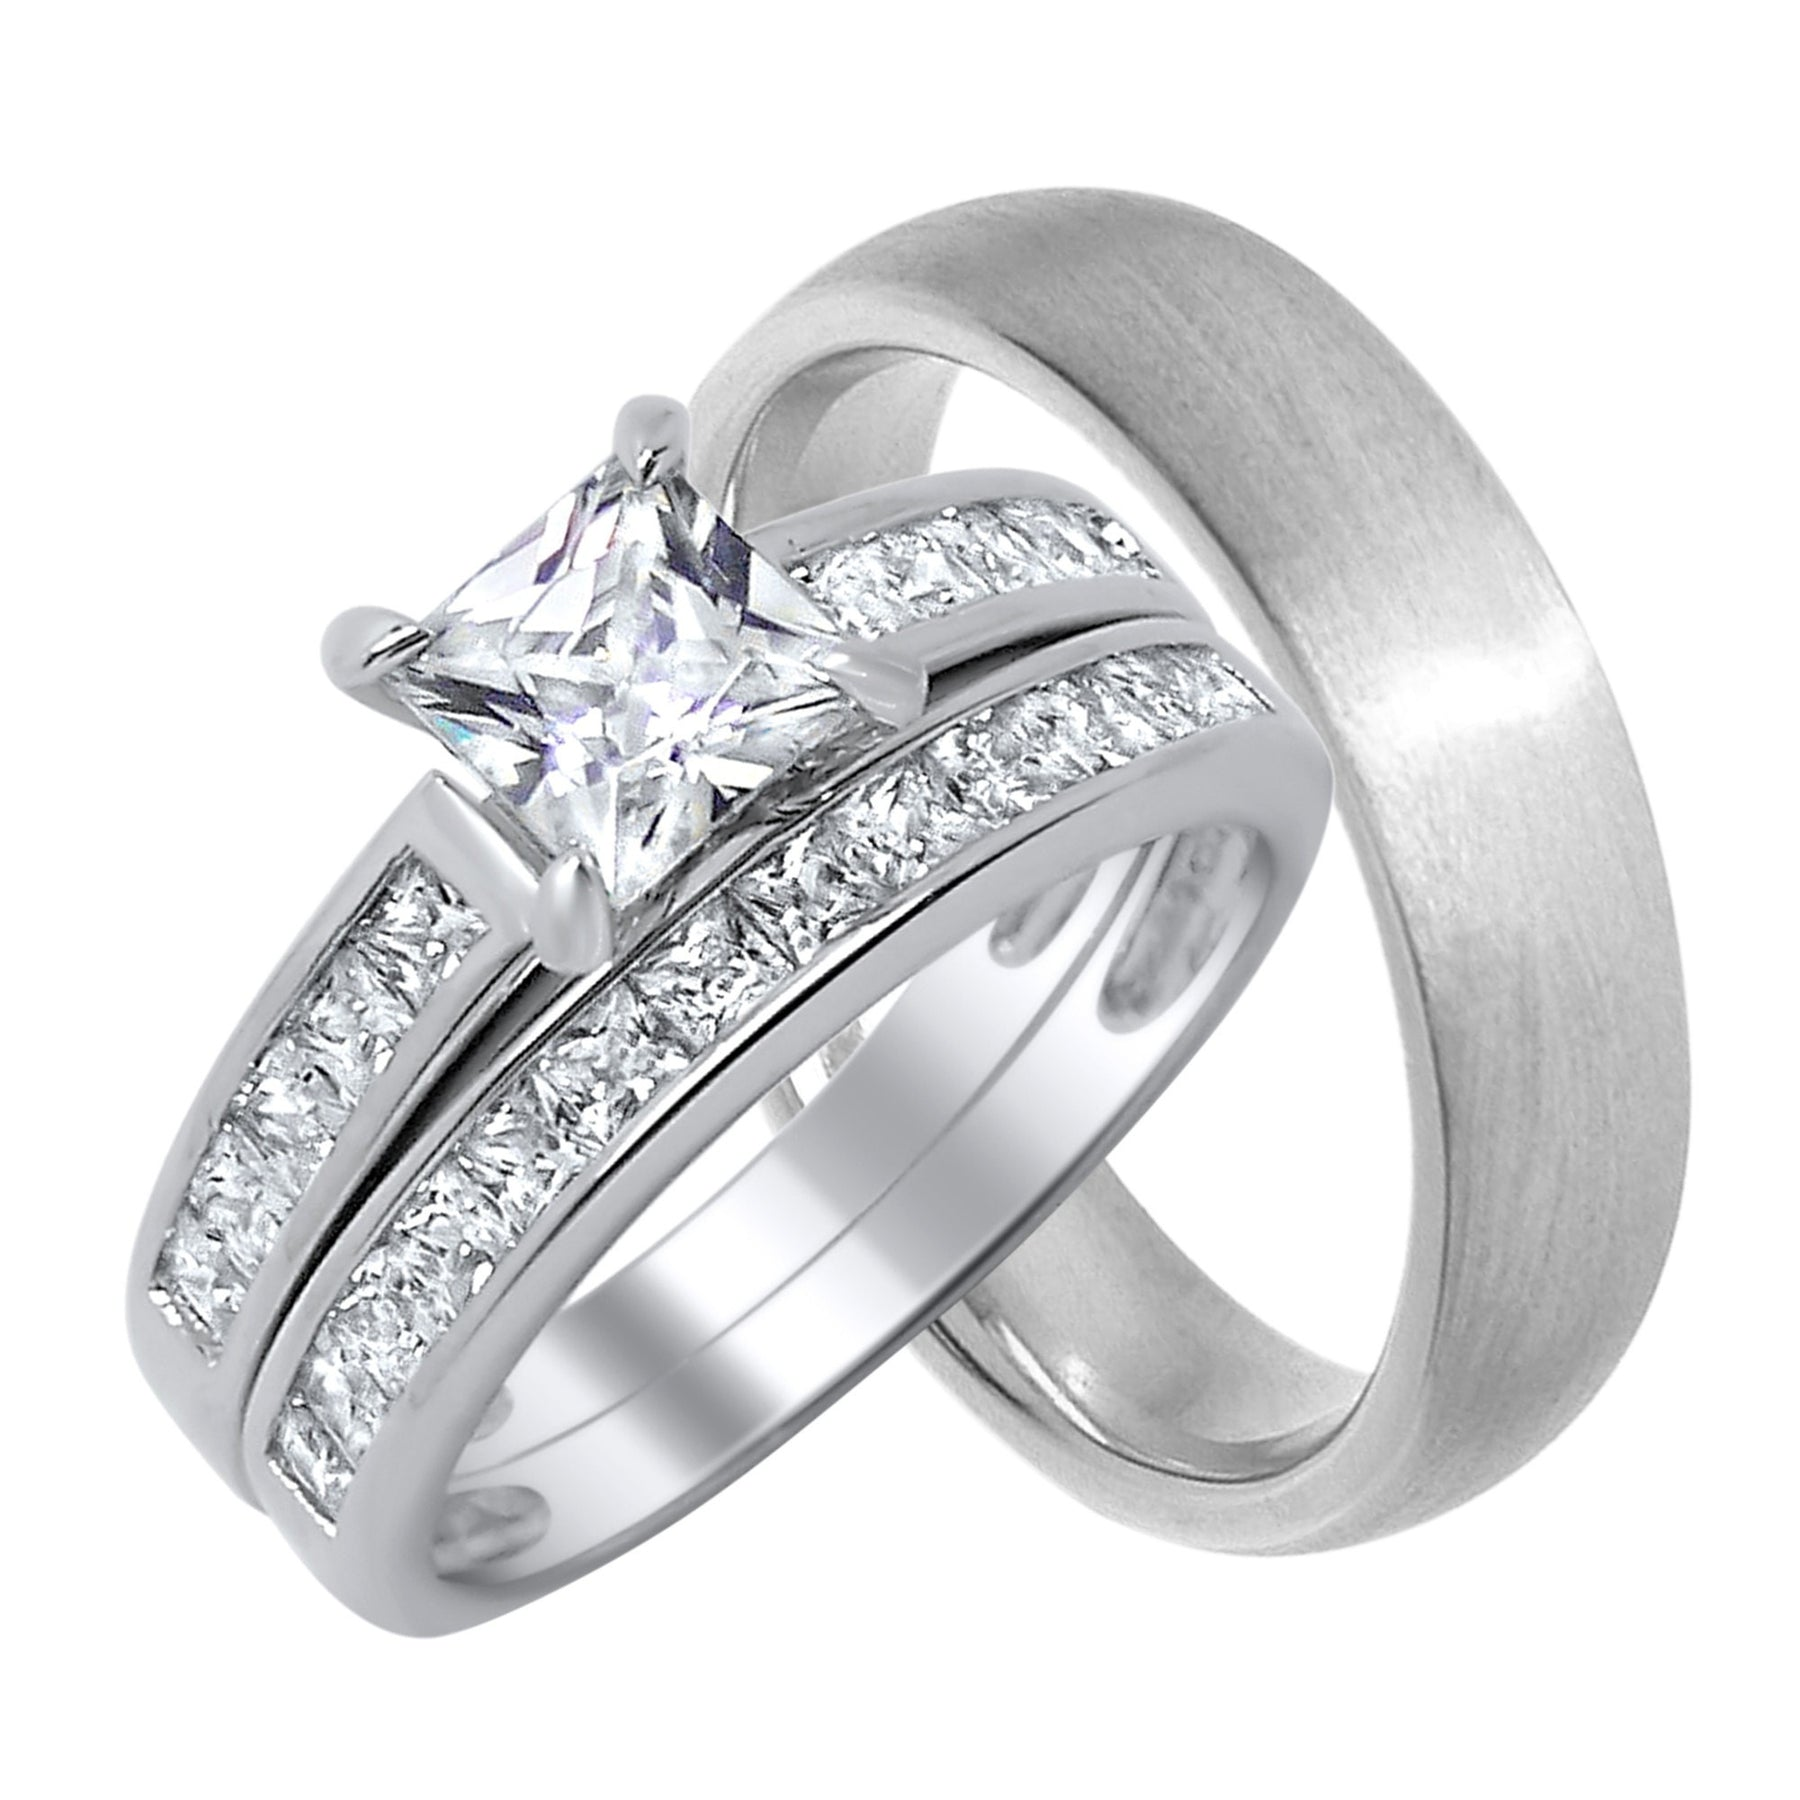 His And Hers Wedding Ring Sets.Matching His Her Trio Wedding Ring Set Looks Real Not Cheap